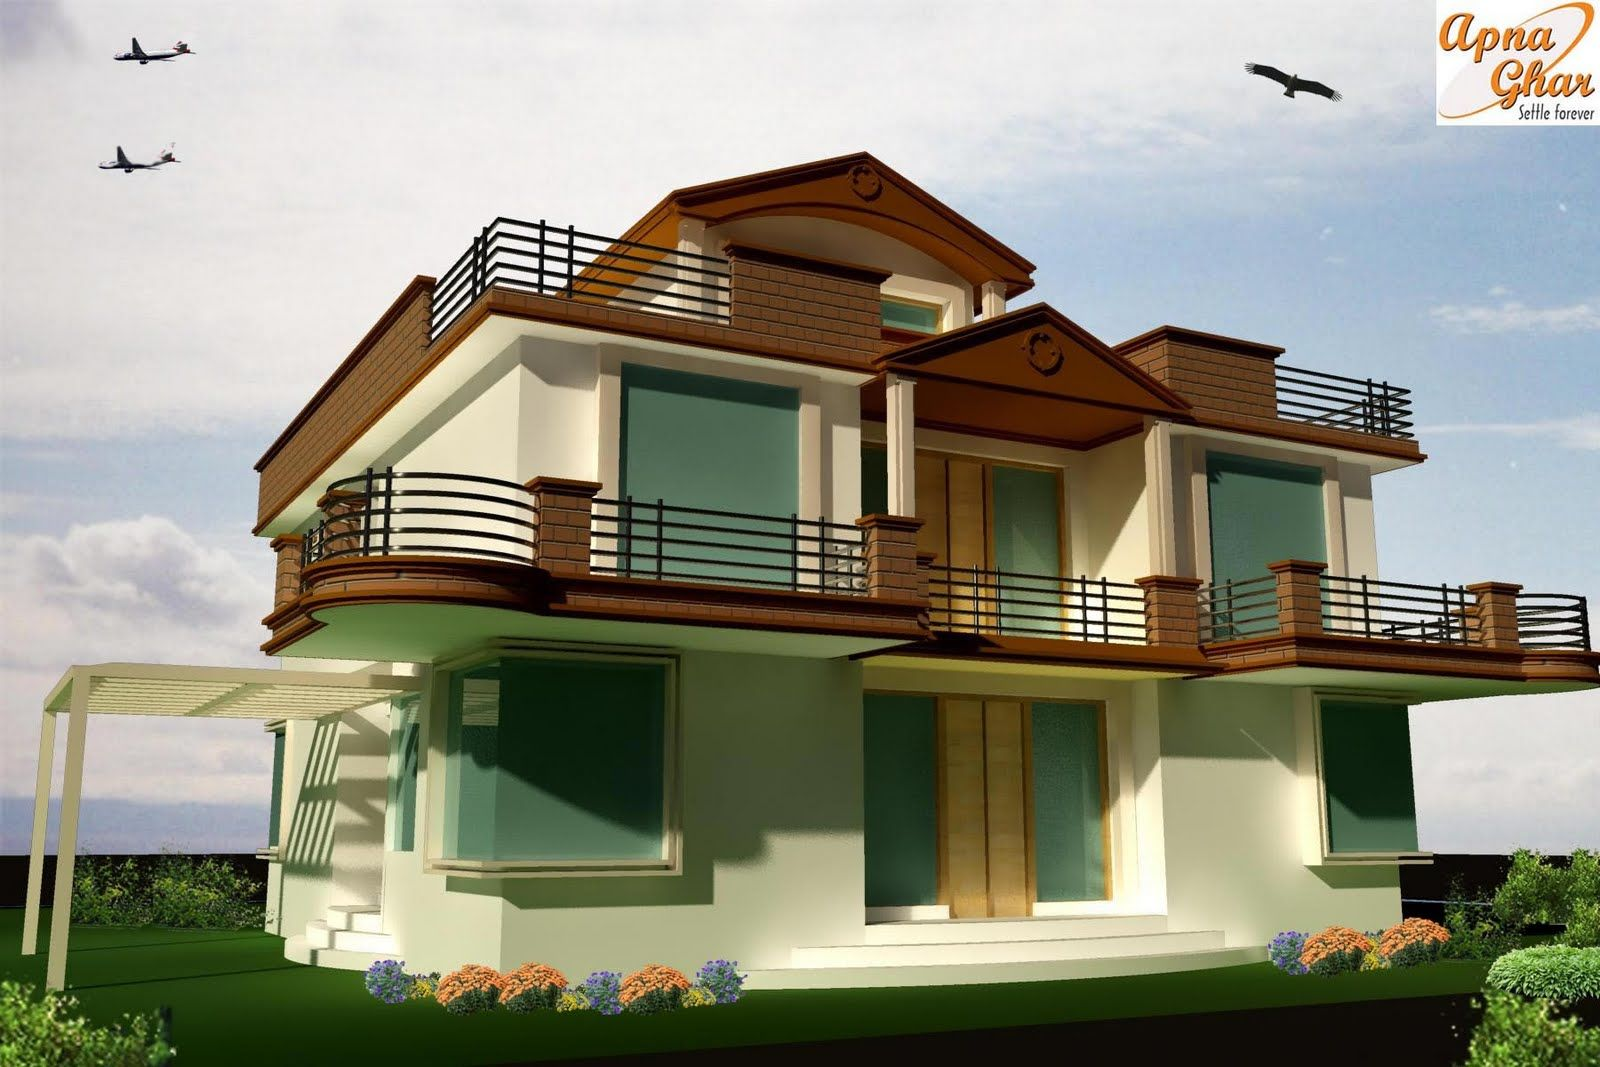 Architectural designs modern architectural house plans for Architectural design home plans